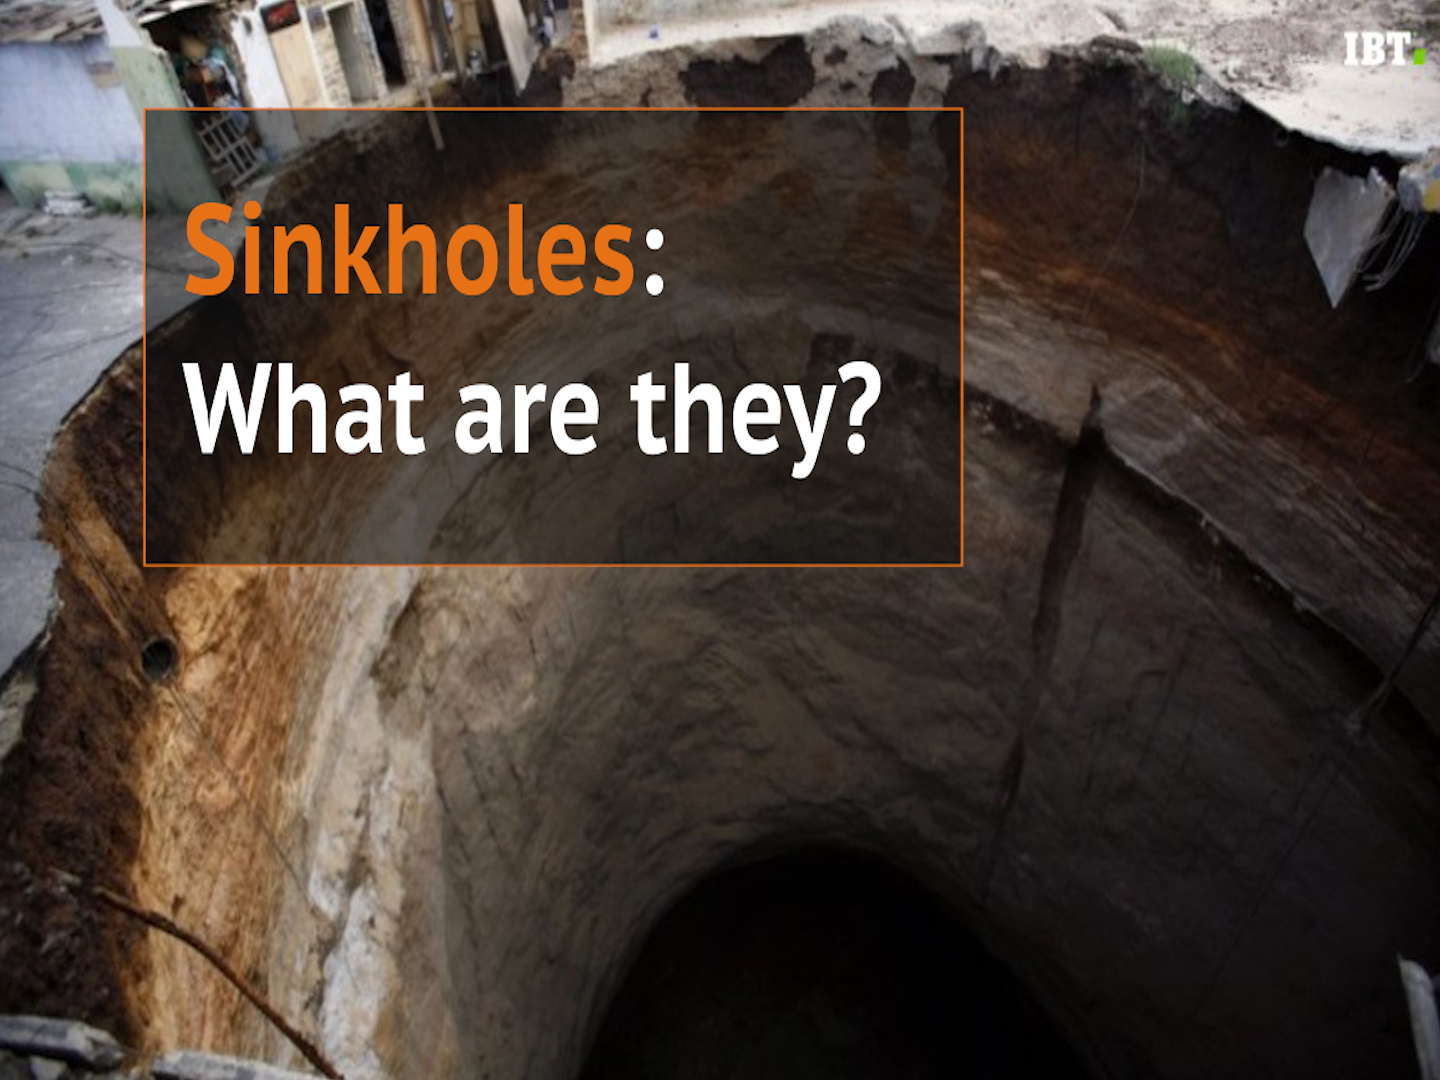 Sinkholes: What are they?